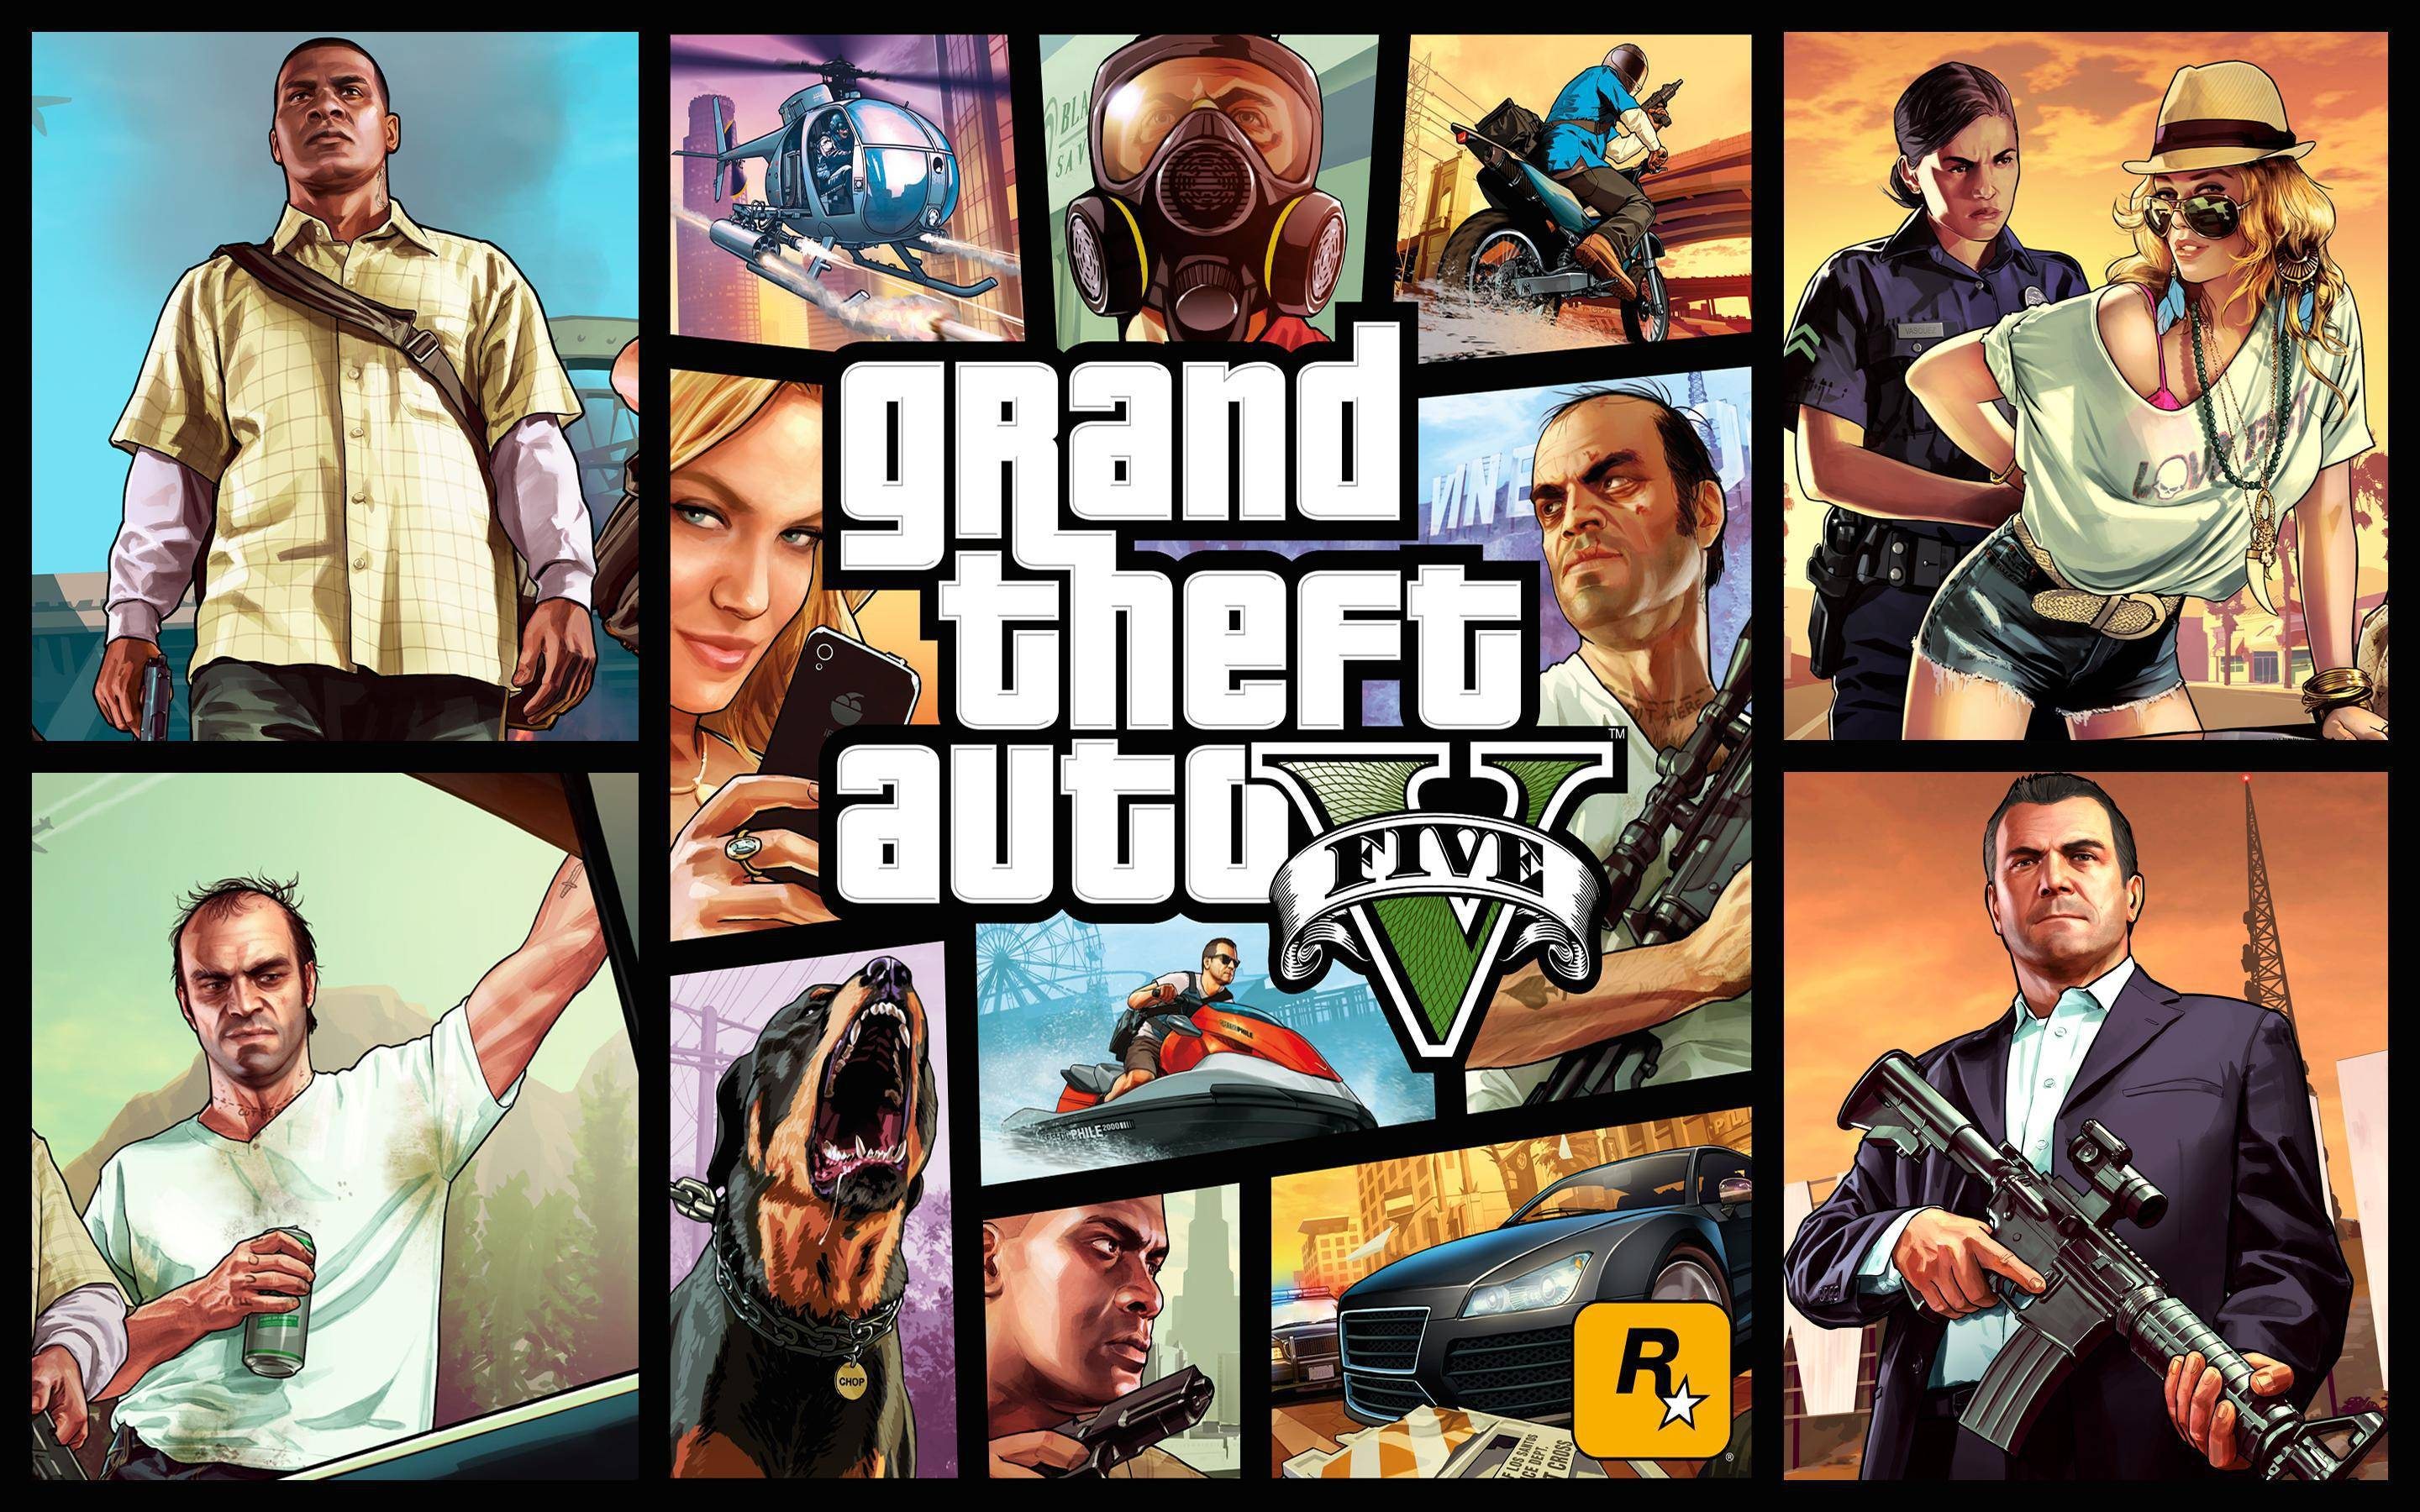 Grand theft auto v SC [change mails + online + guarante